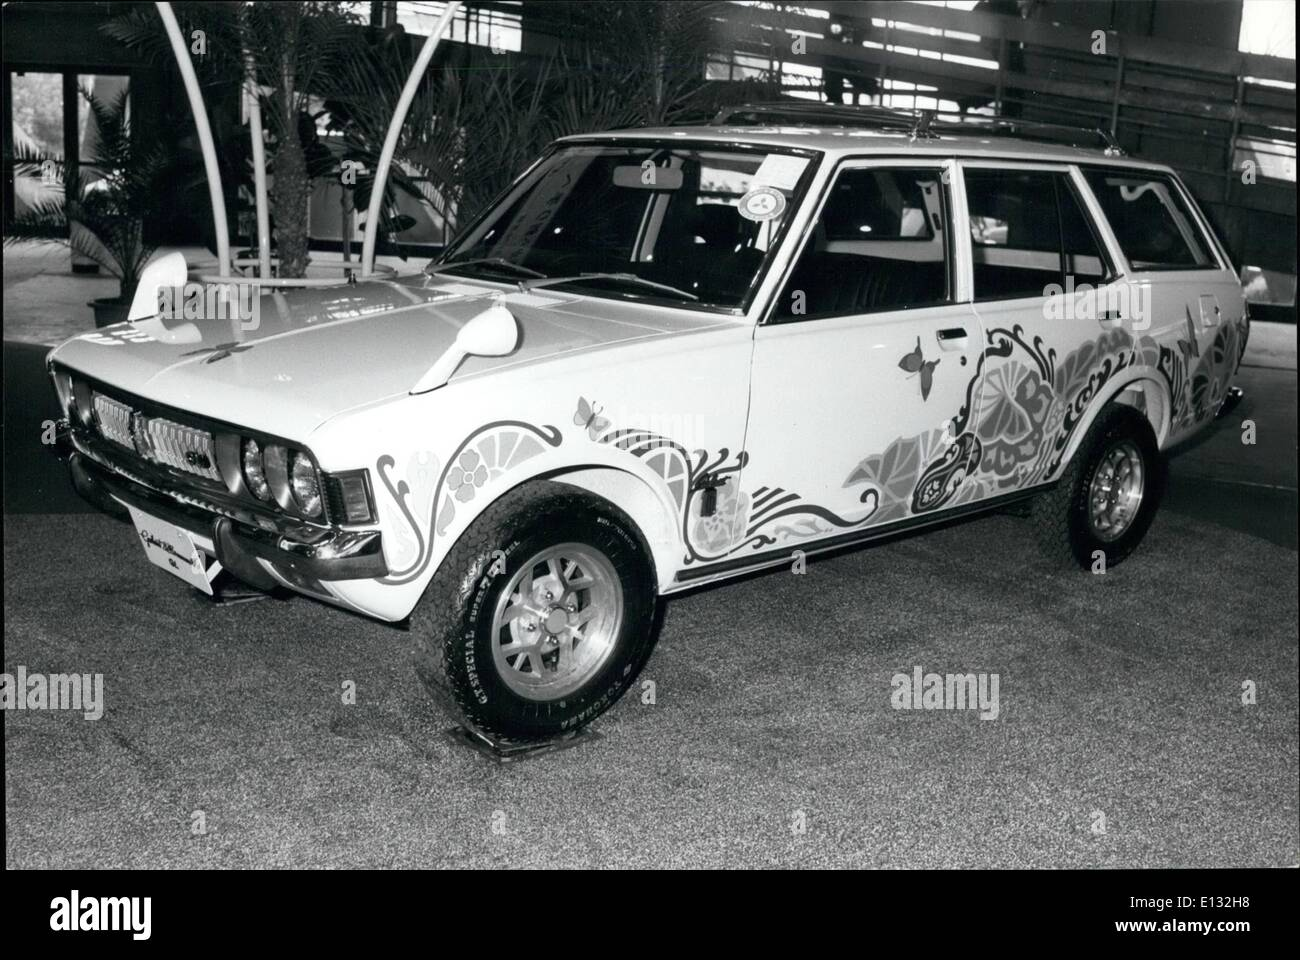 Feb. 26, 2012 - Brighter Motoring? This Mitsubishi-made Galant station wagon with a design of butterflies, flowers, Stock Photo